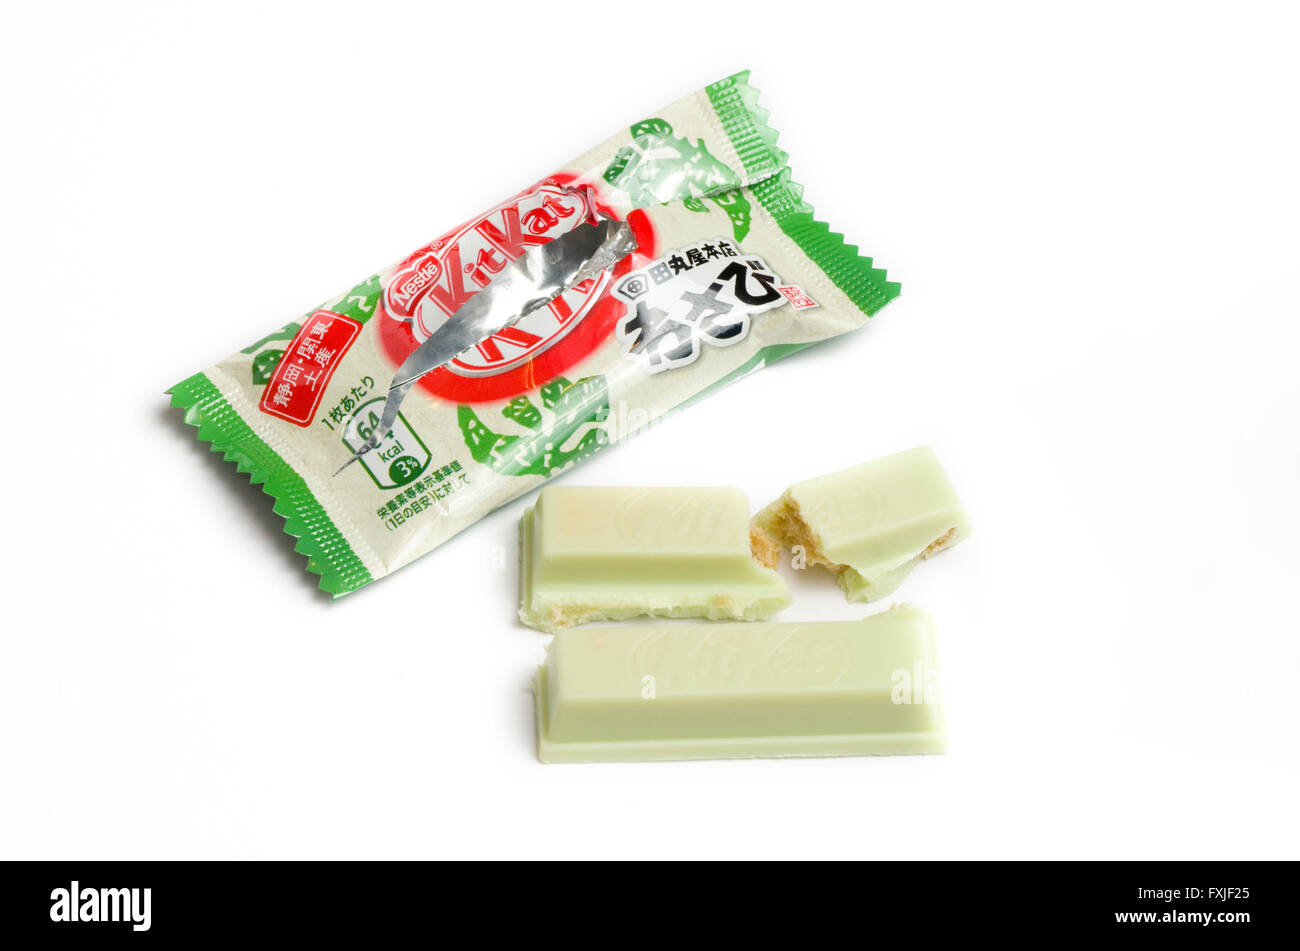 Unusual Japanese Kitkat flavours. This is Wasabi (a spicy Japanese root similar to horseradish) Stock Photo